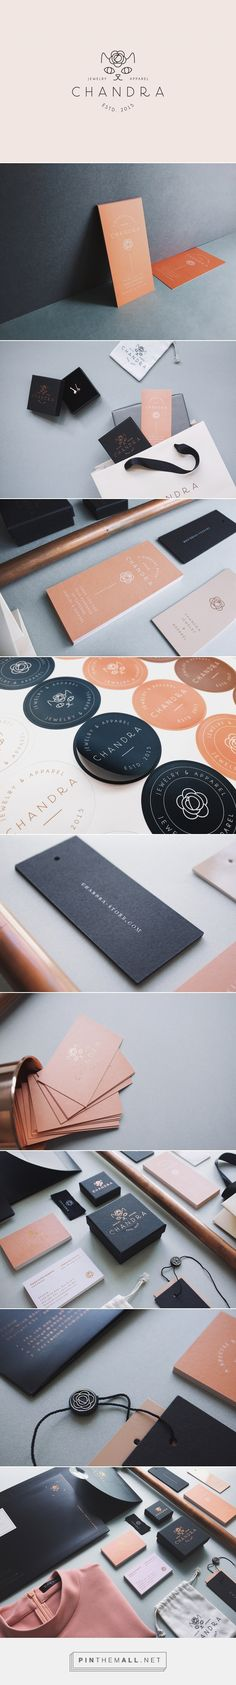 CHANDRA on Behance | Fivestar Branding – Design and Branding Agency & Inspiration Gallery